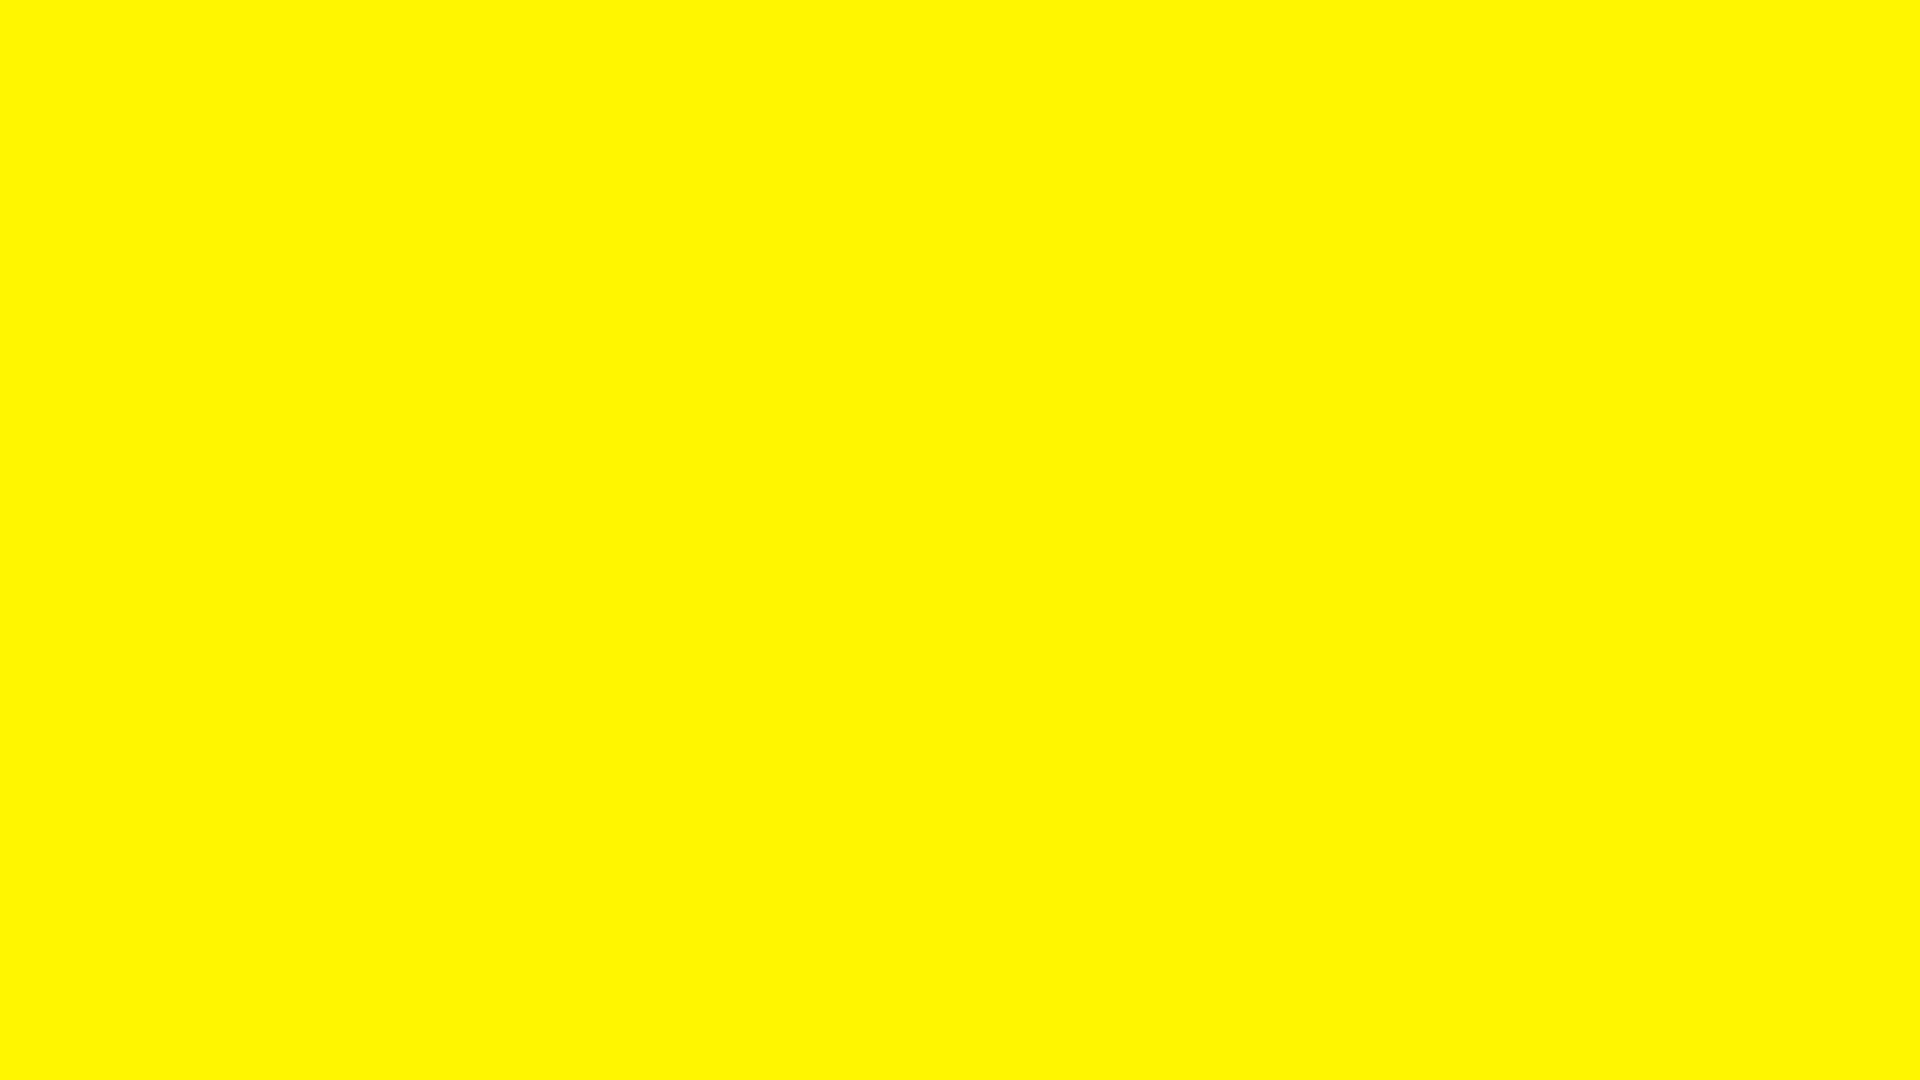 1920x1080 Cadmium Yellow Solid Color Background